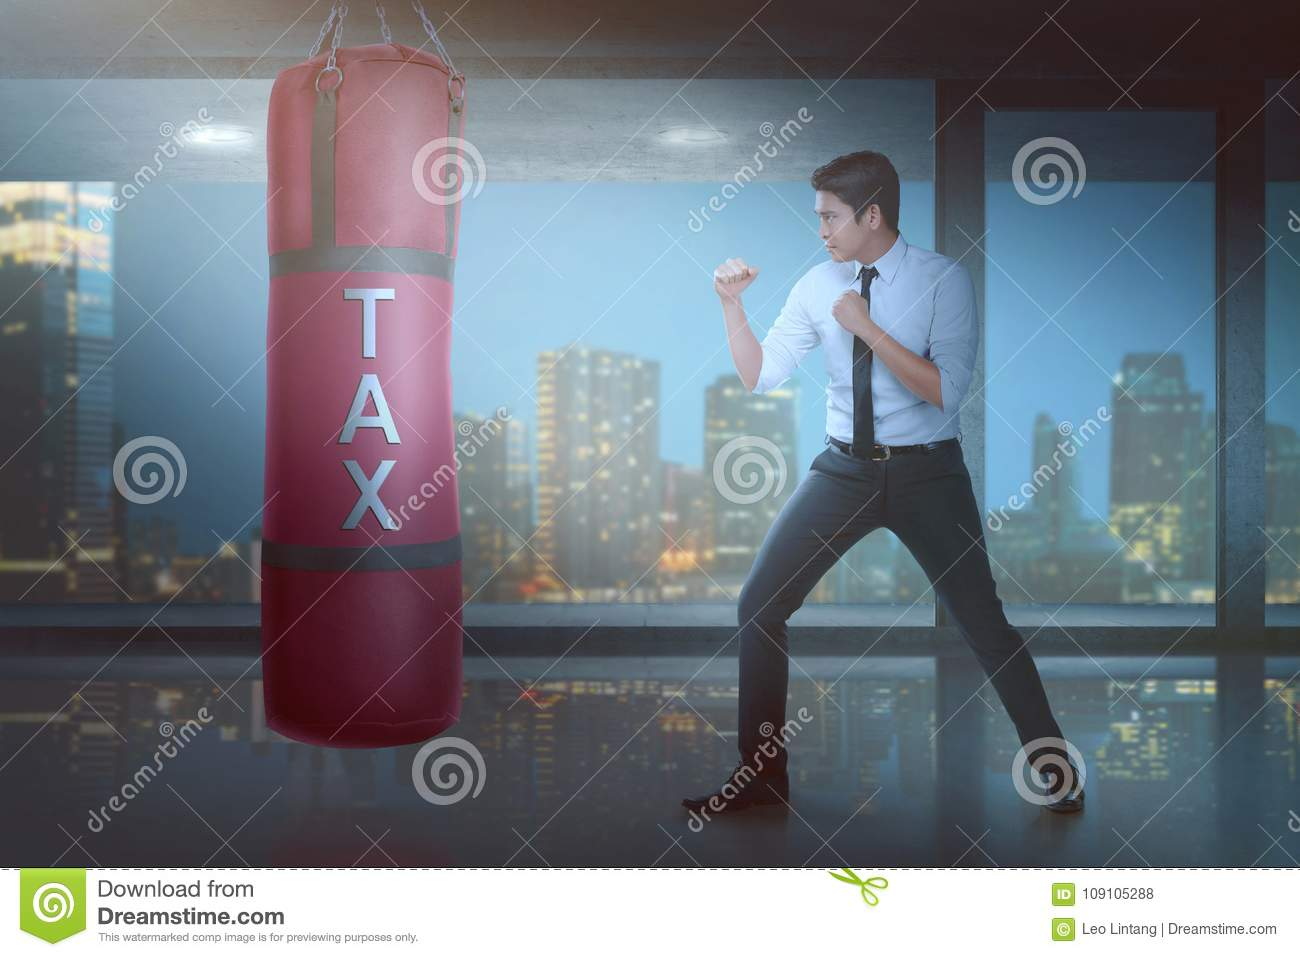 Powerful Asian Businessman Puncing Boxing Heavy Bag With Tax Sign On It In  The Office